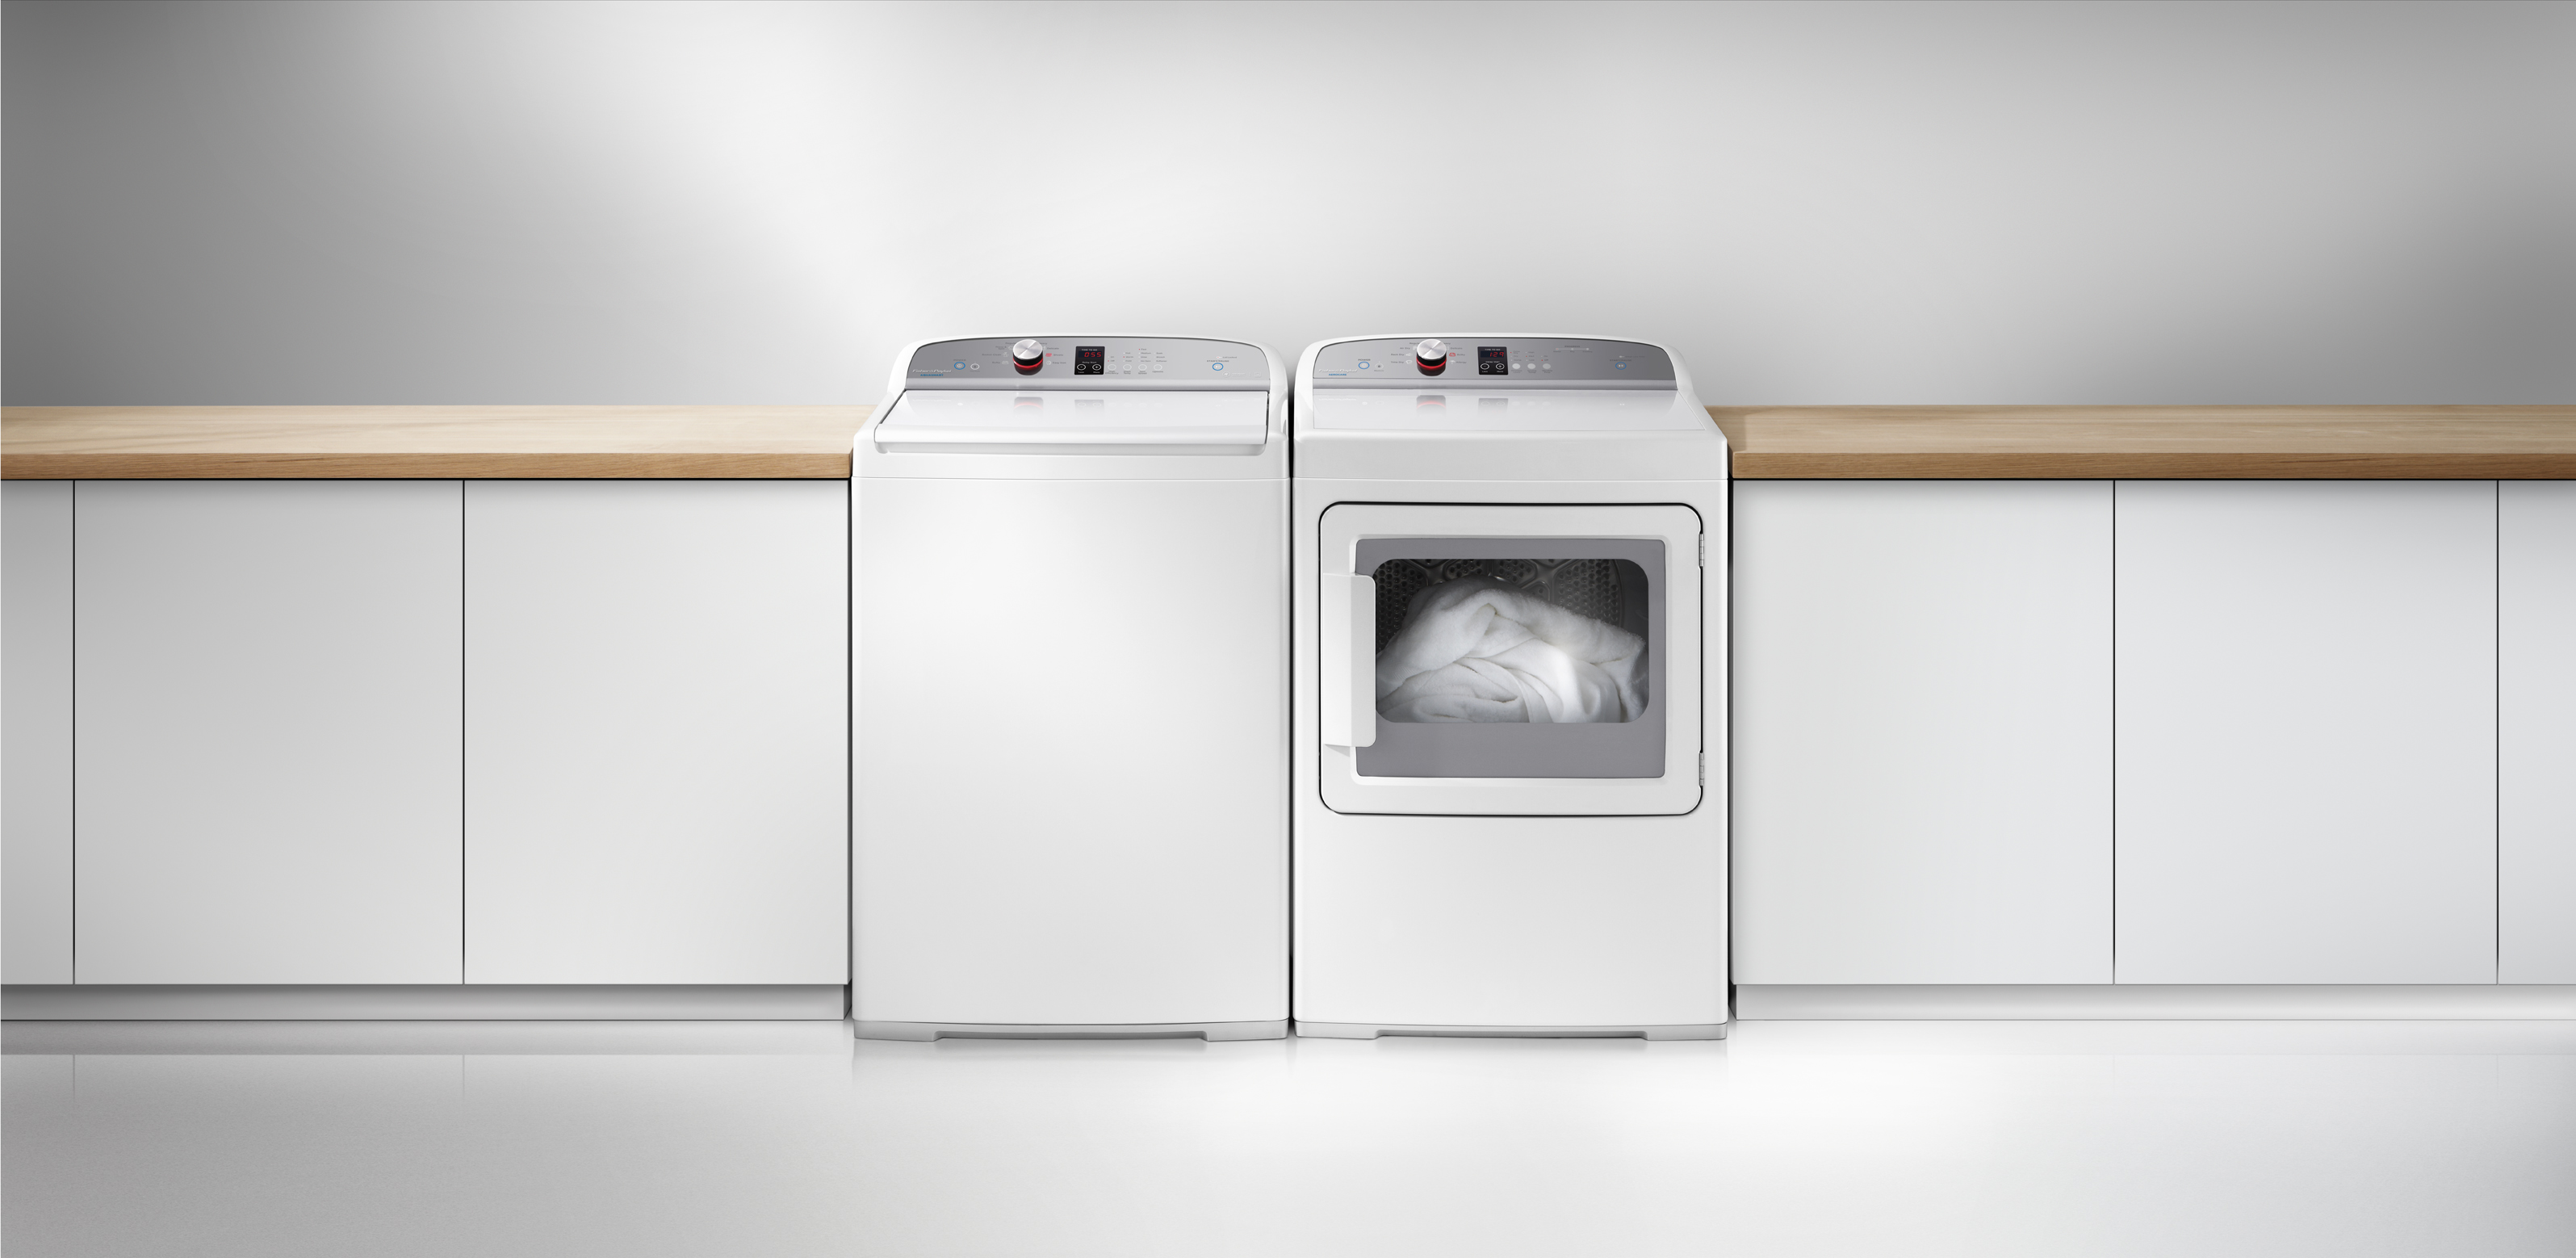 Uncategorized Fisher And Paykel Kitchen Appliances new zealand based fisher paykel appliances re invents clothes the perfect pair aquasmart aerocarefisher paykel